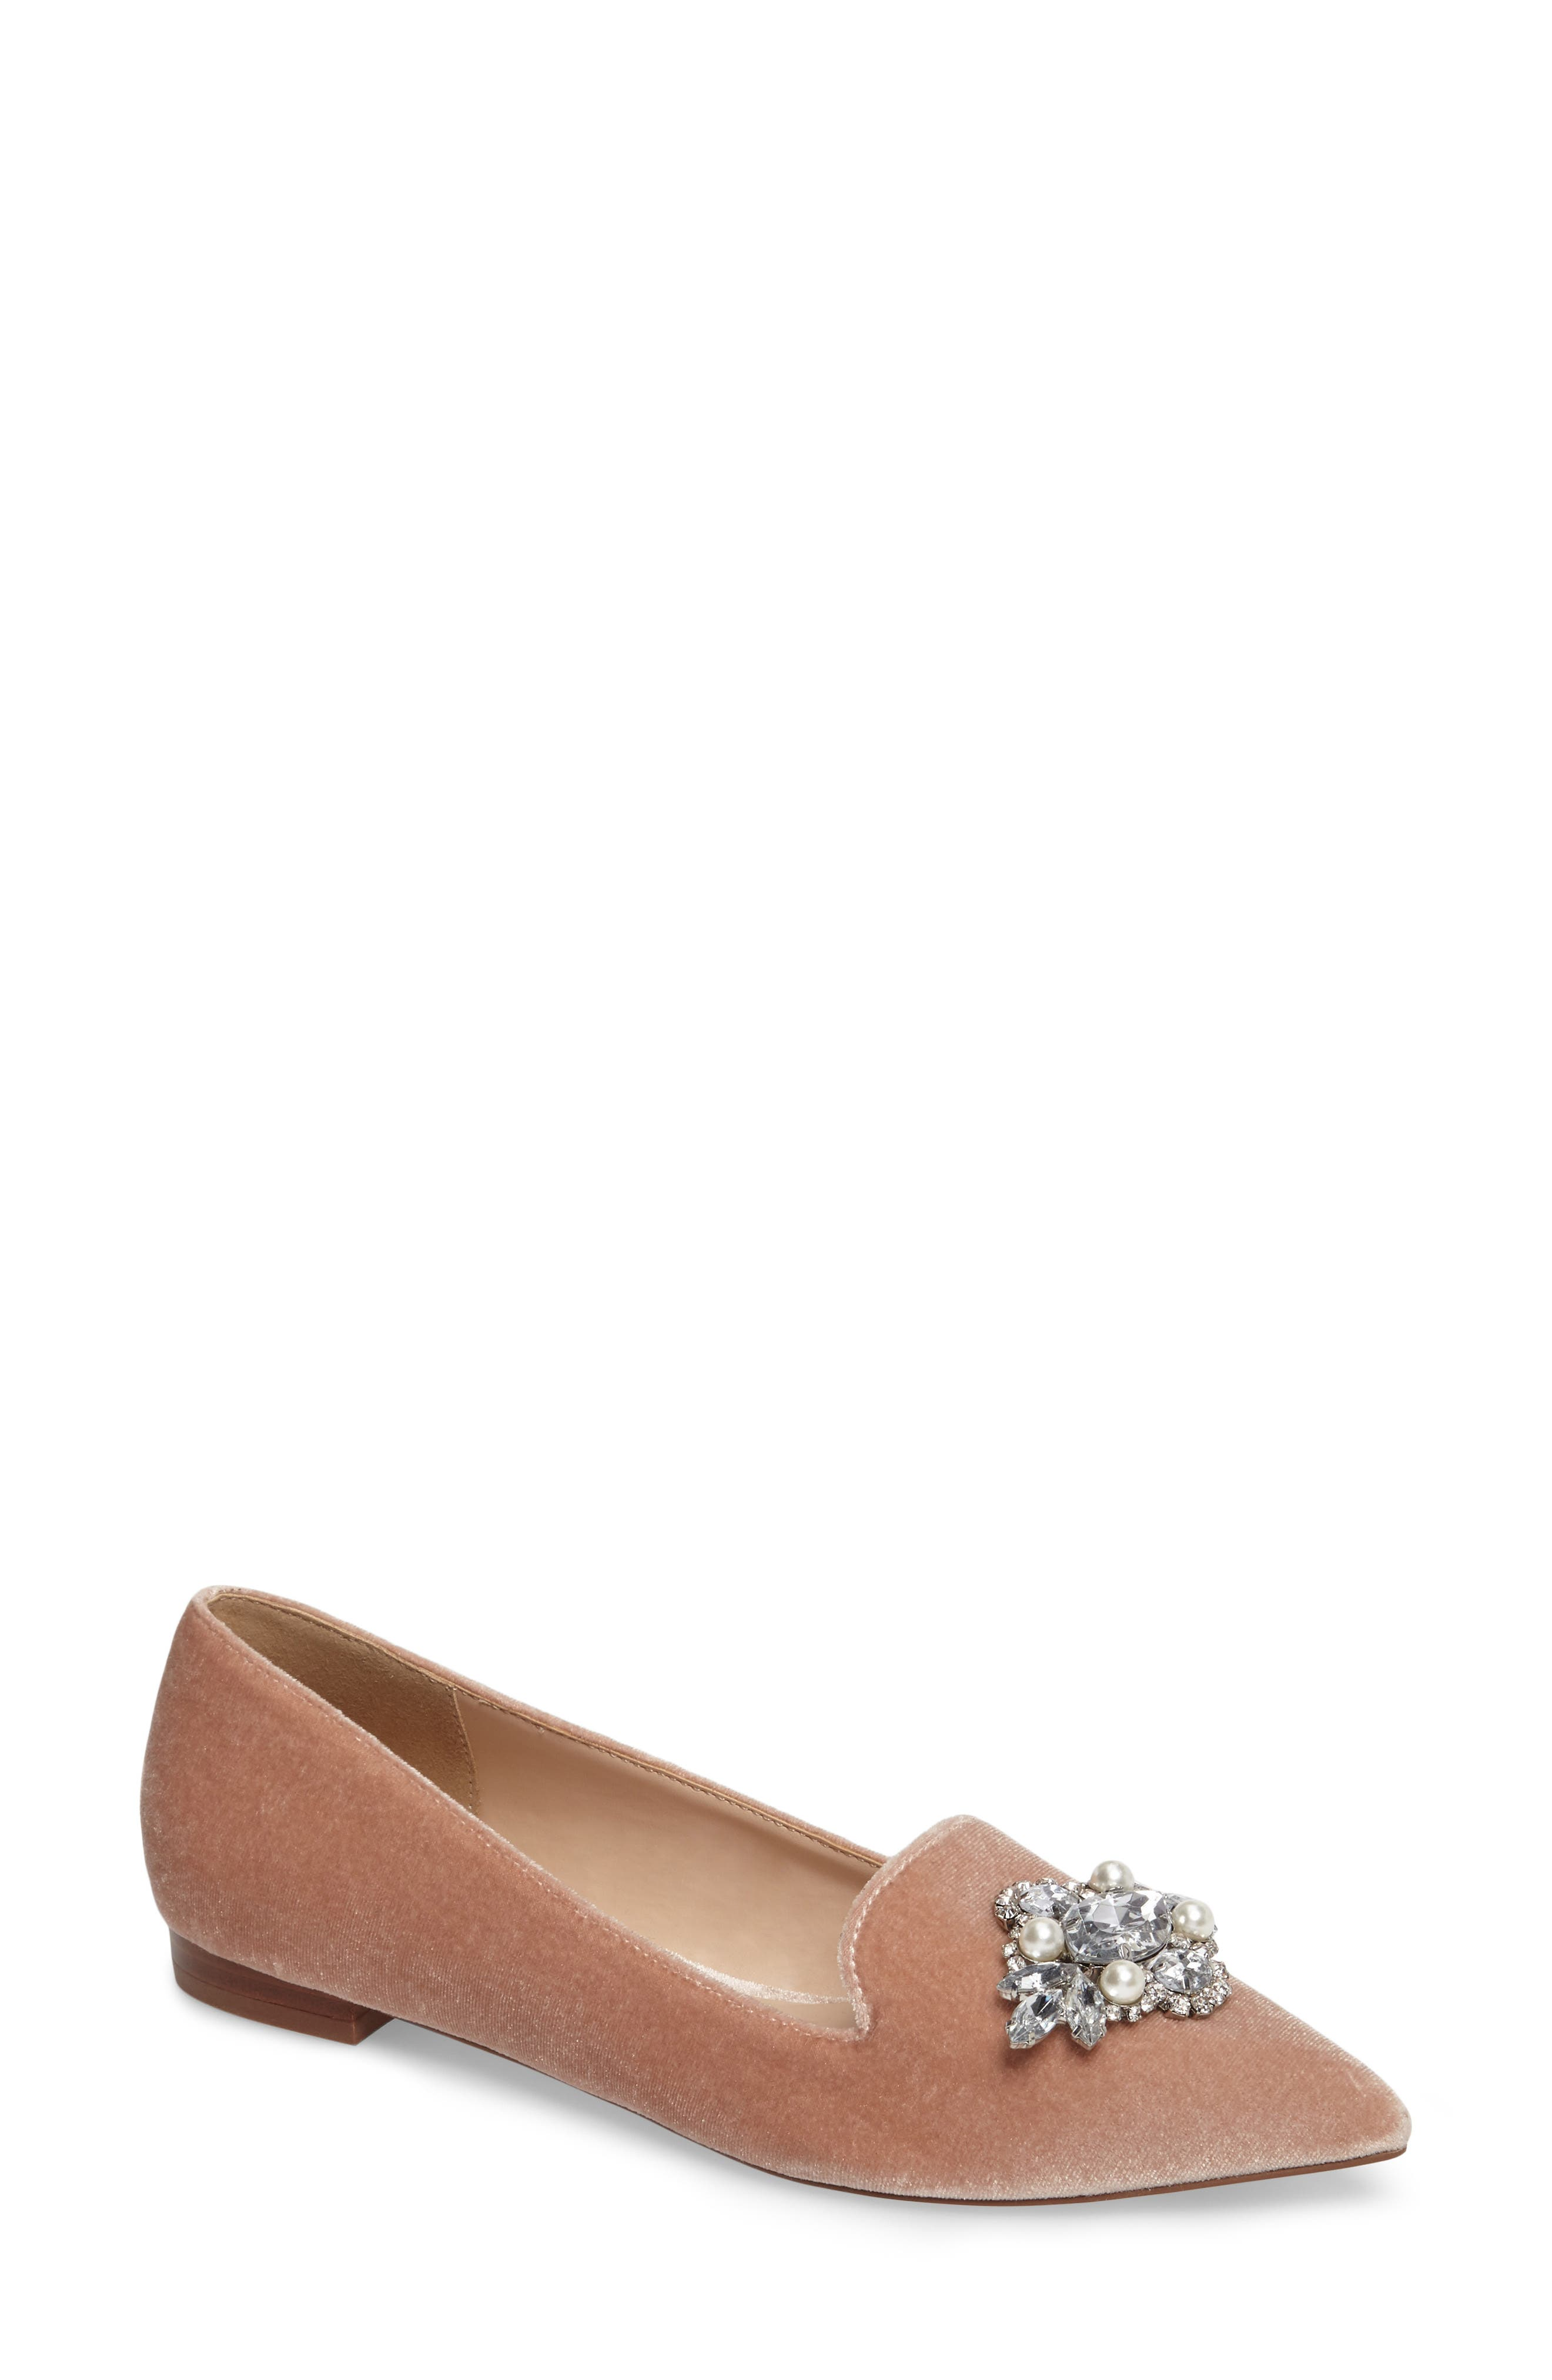 Main Image - Sole Society Libry Crystal Embellished Flat (Women)